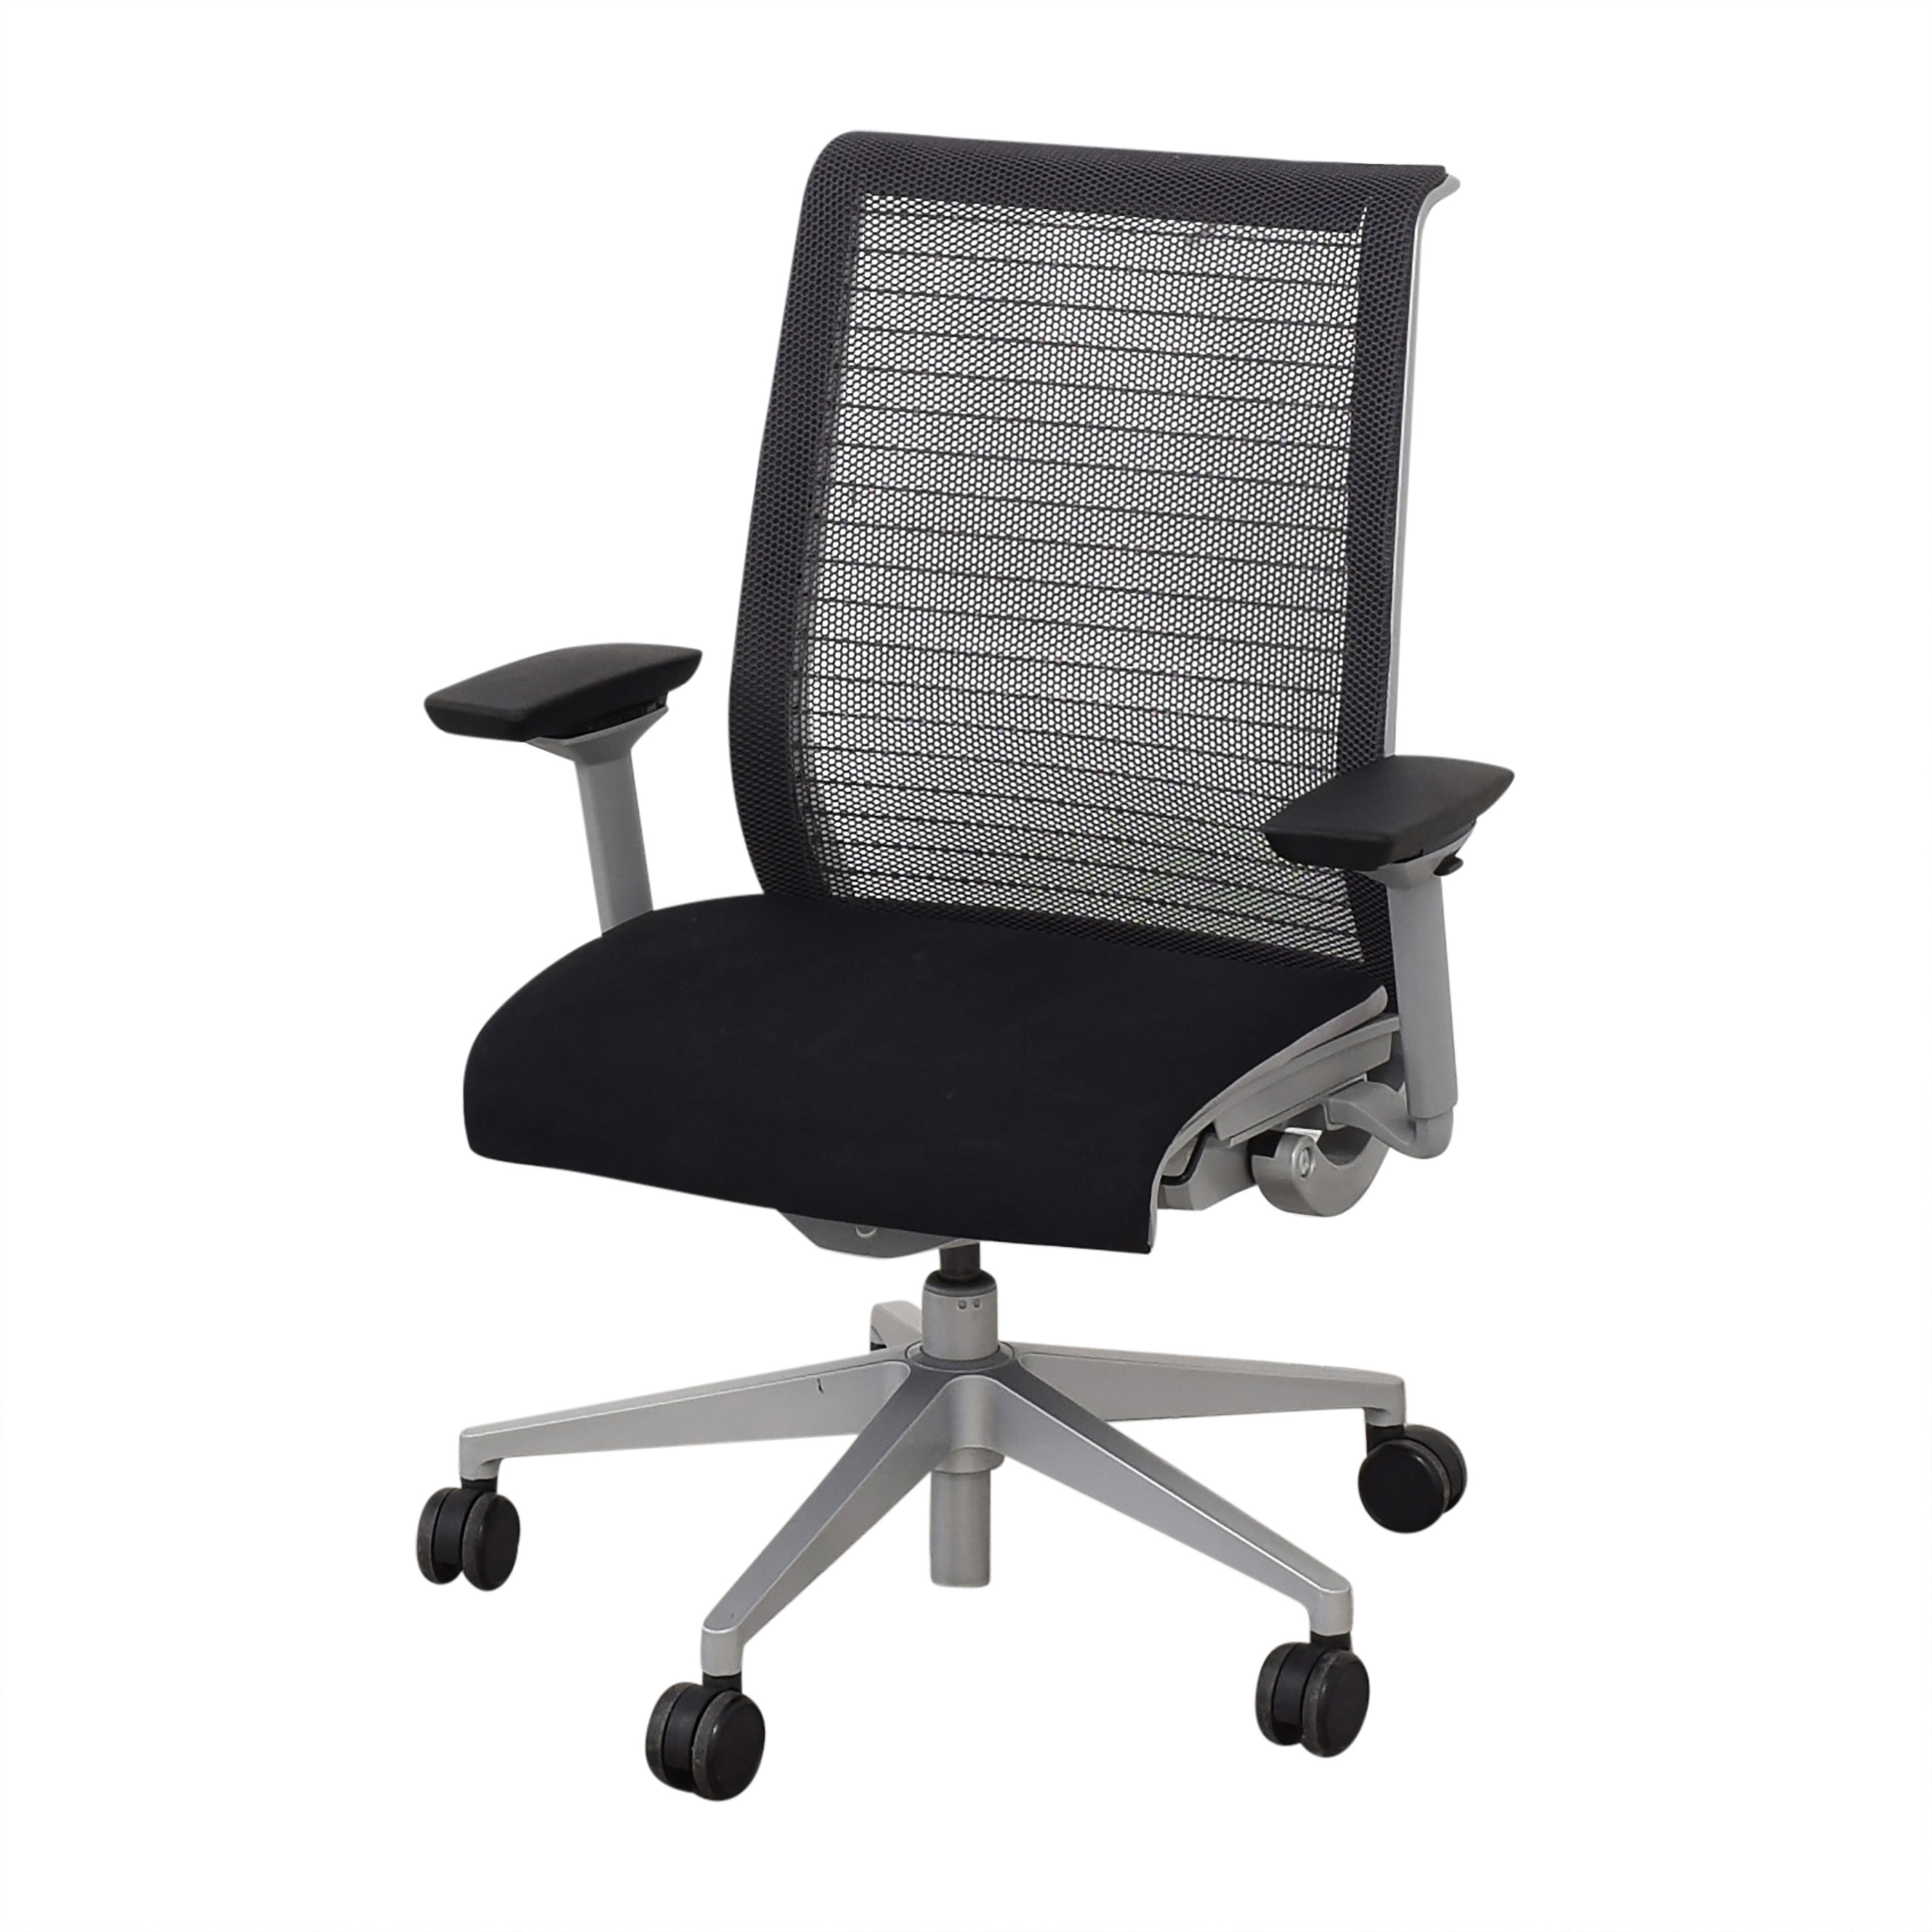 Steelcase Steelcase Cobi Swivel Chair dimensions